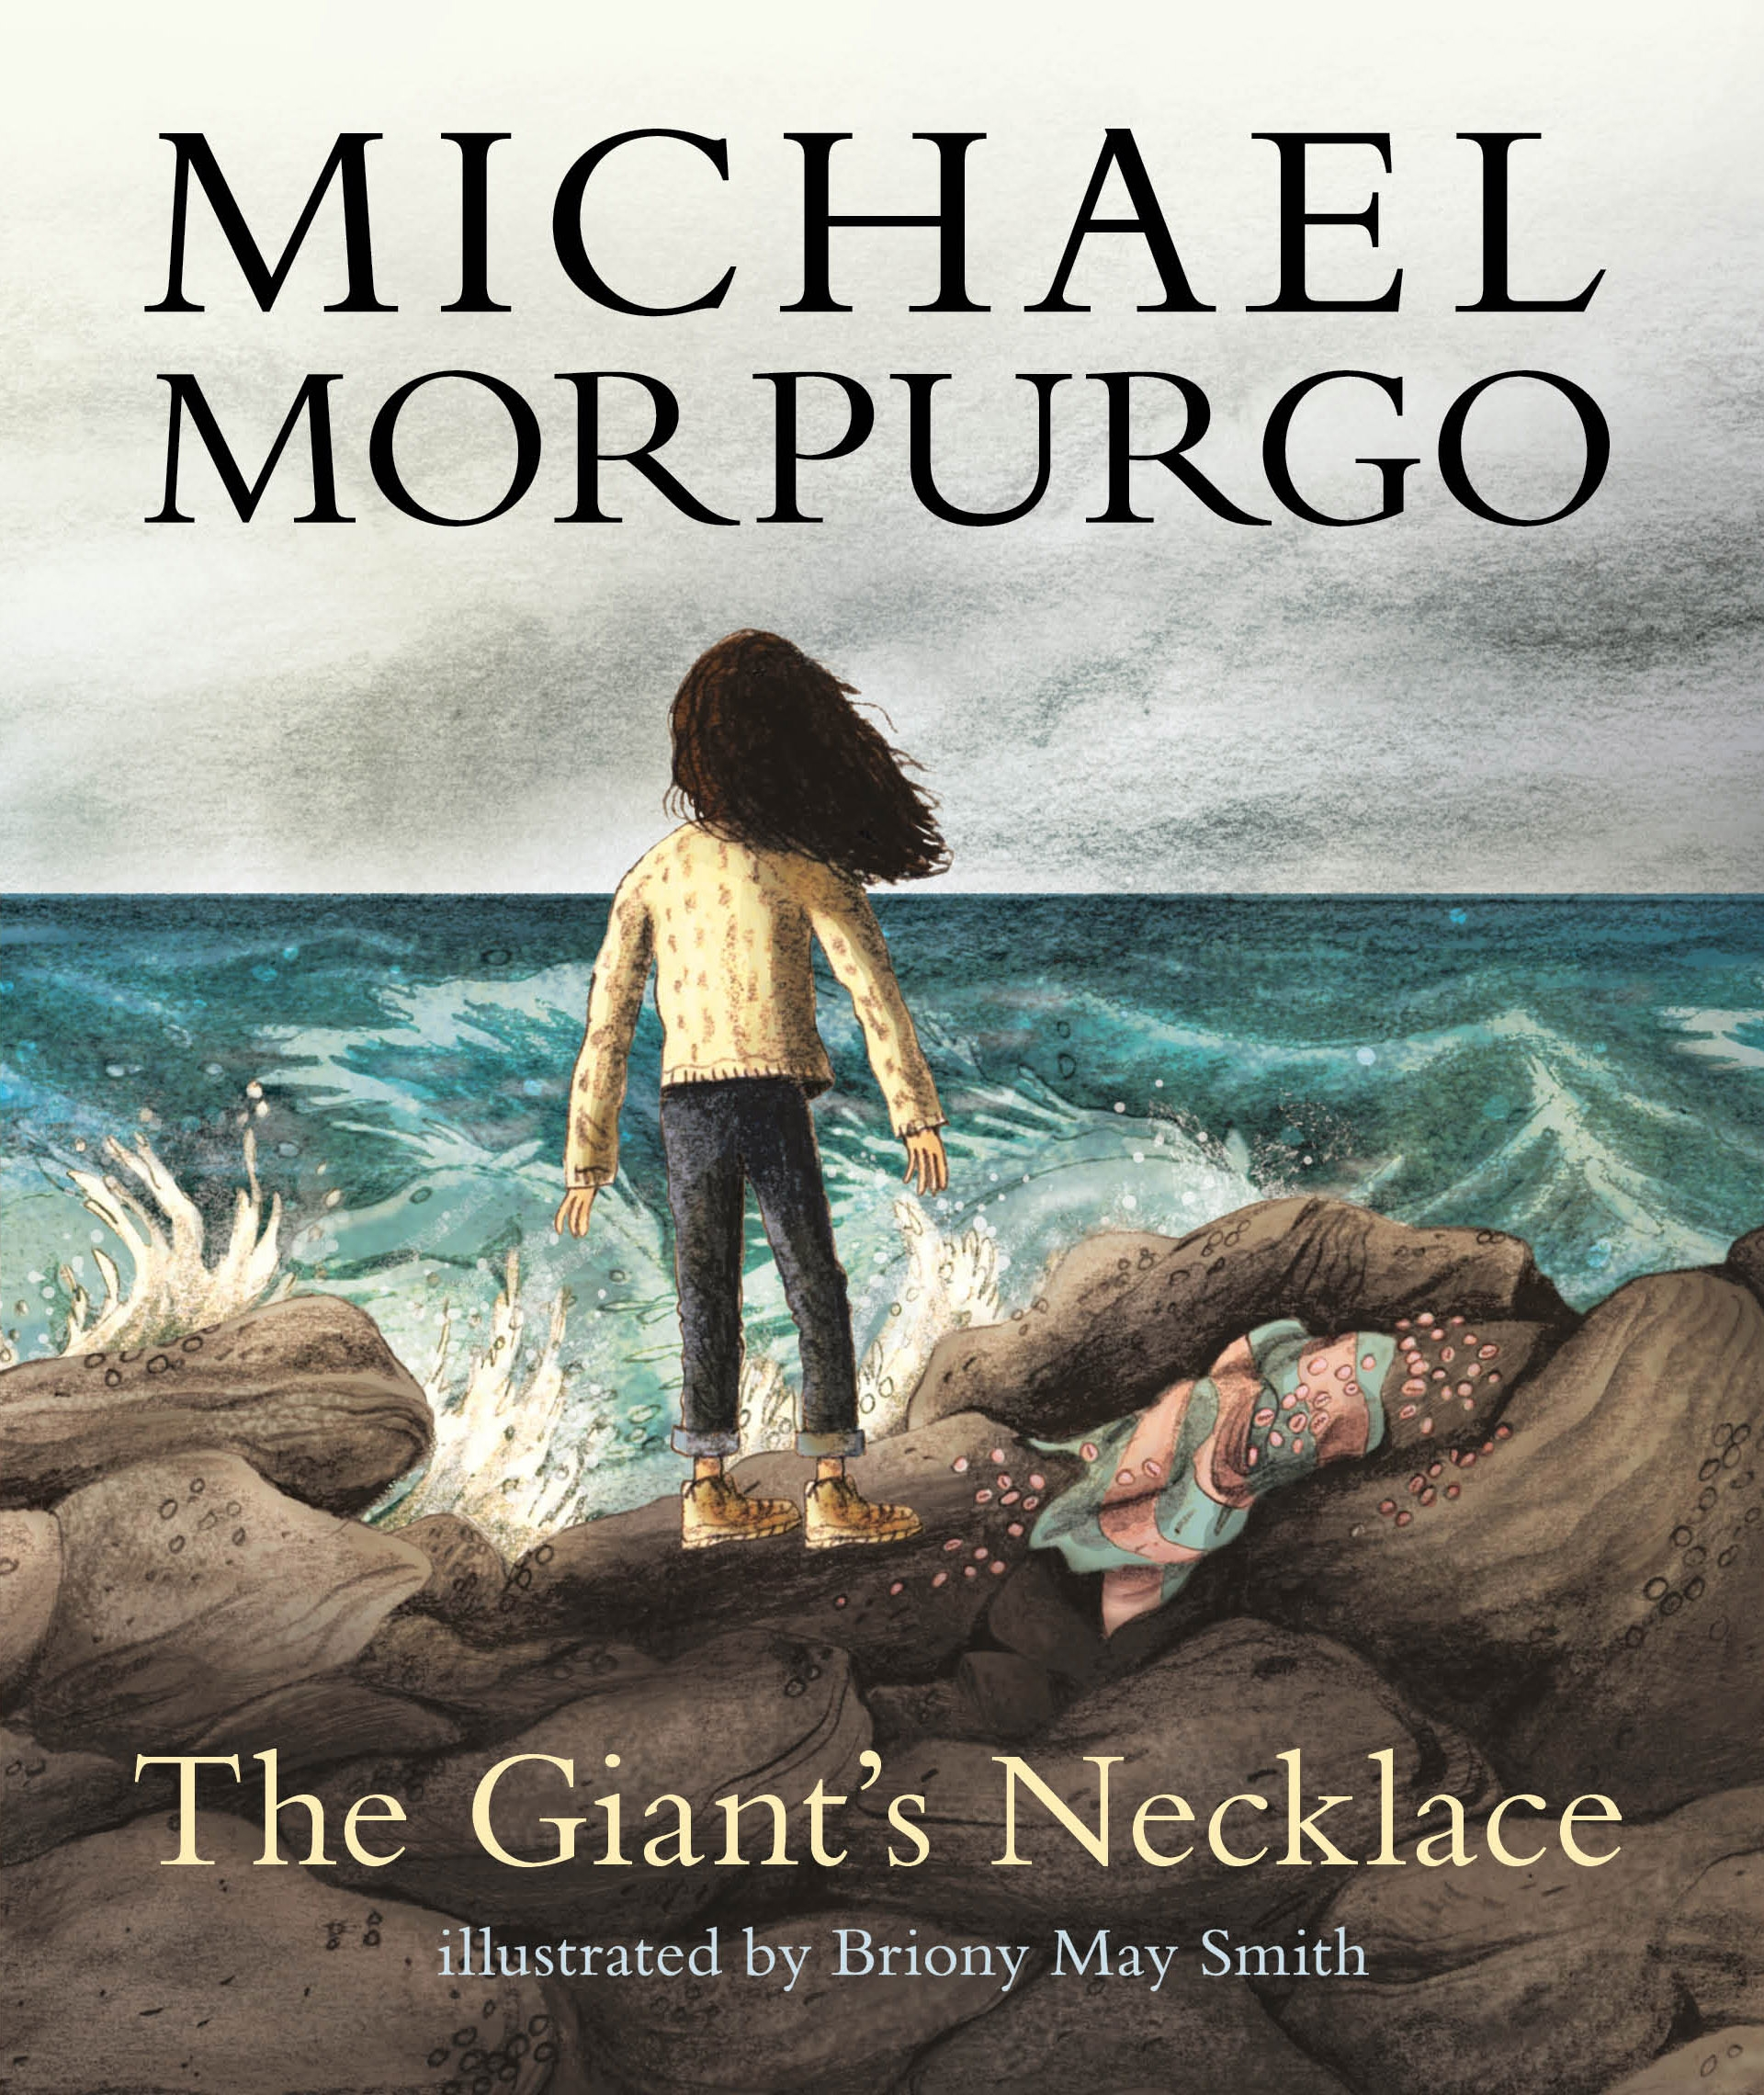 The Giant's Necklace - a thrilling ghost story from Michael Morpurgo